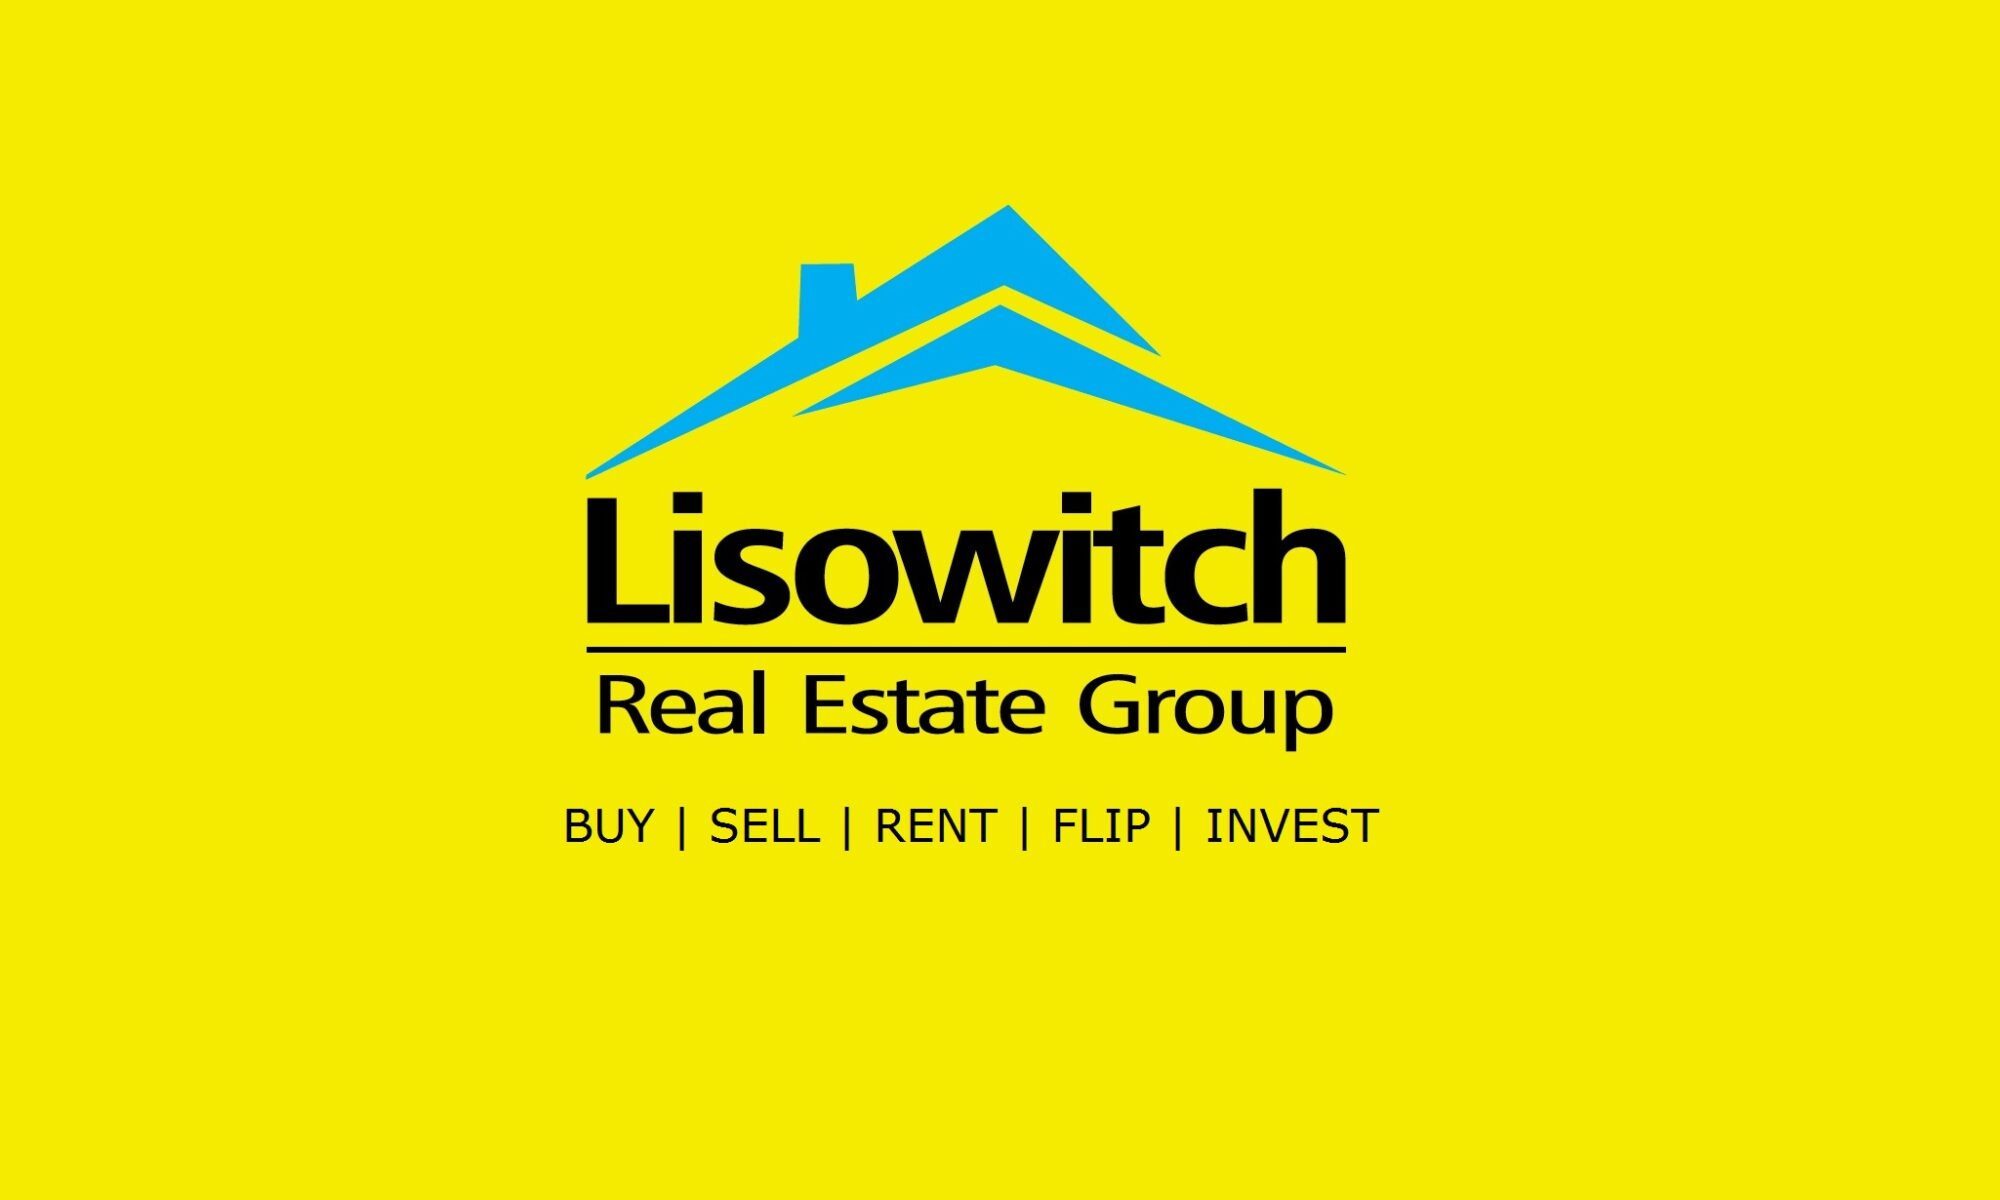 Lisowitch Real Estate Group